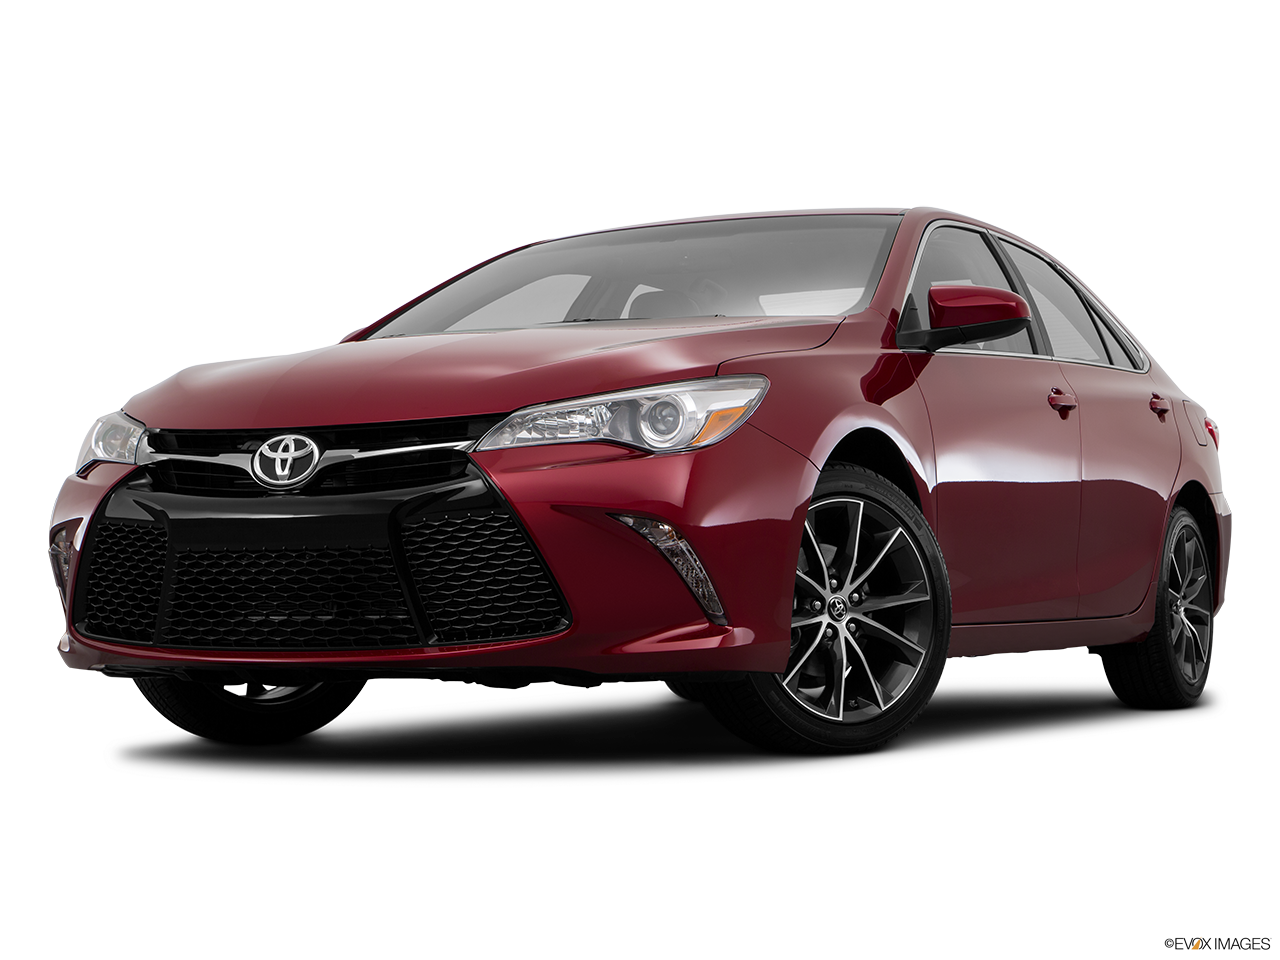 Test Drive A 2017 Toyota Camry at Toyota of El Cajon near San Diego